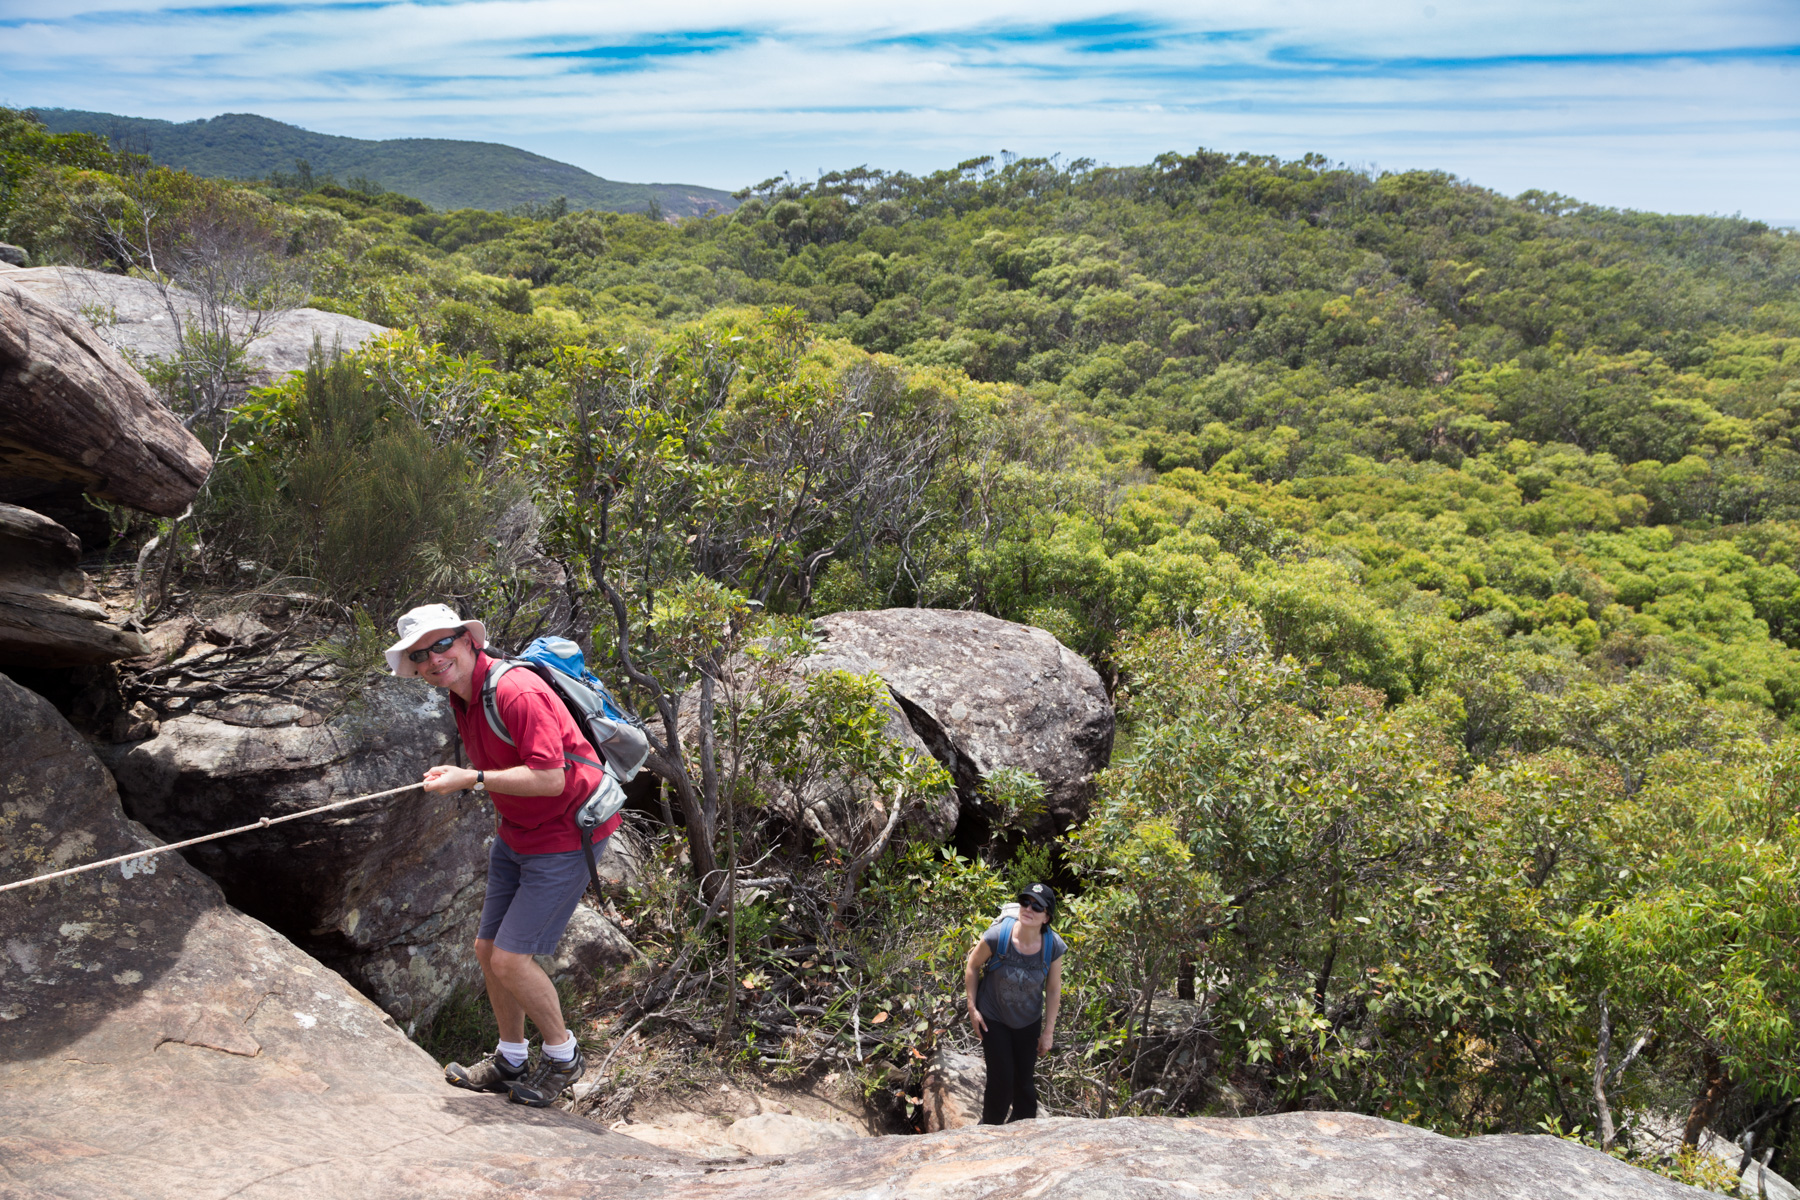 mg 8782 lr Guide to Bouddi National Park